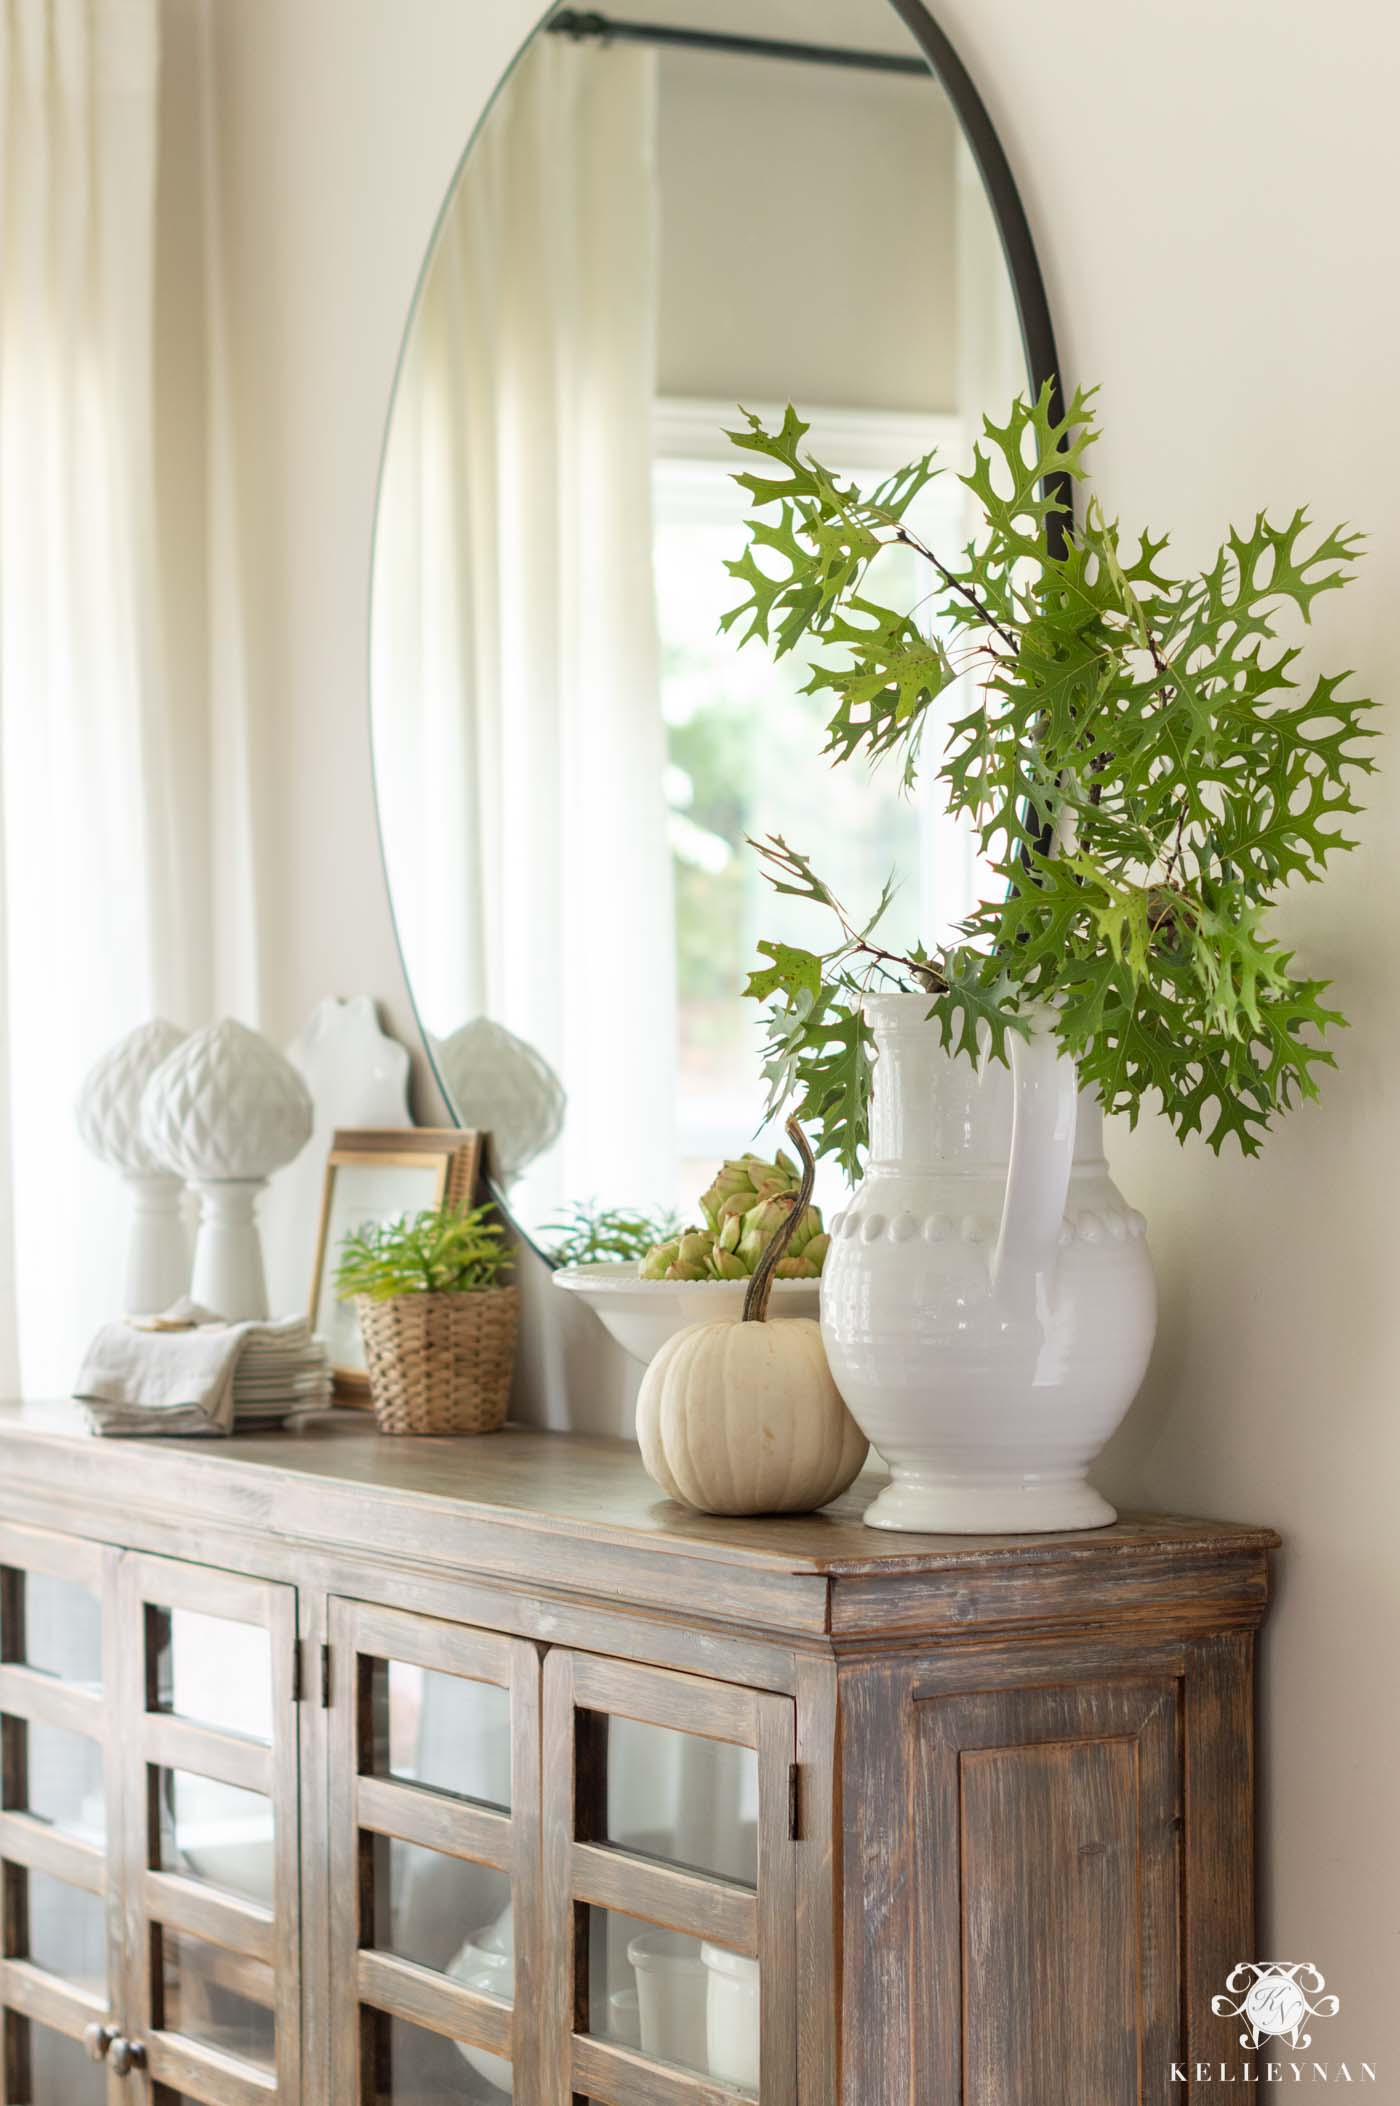 Fall Home Decor Ideas with Green Leaves